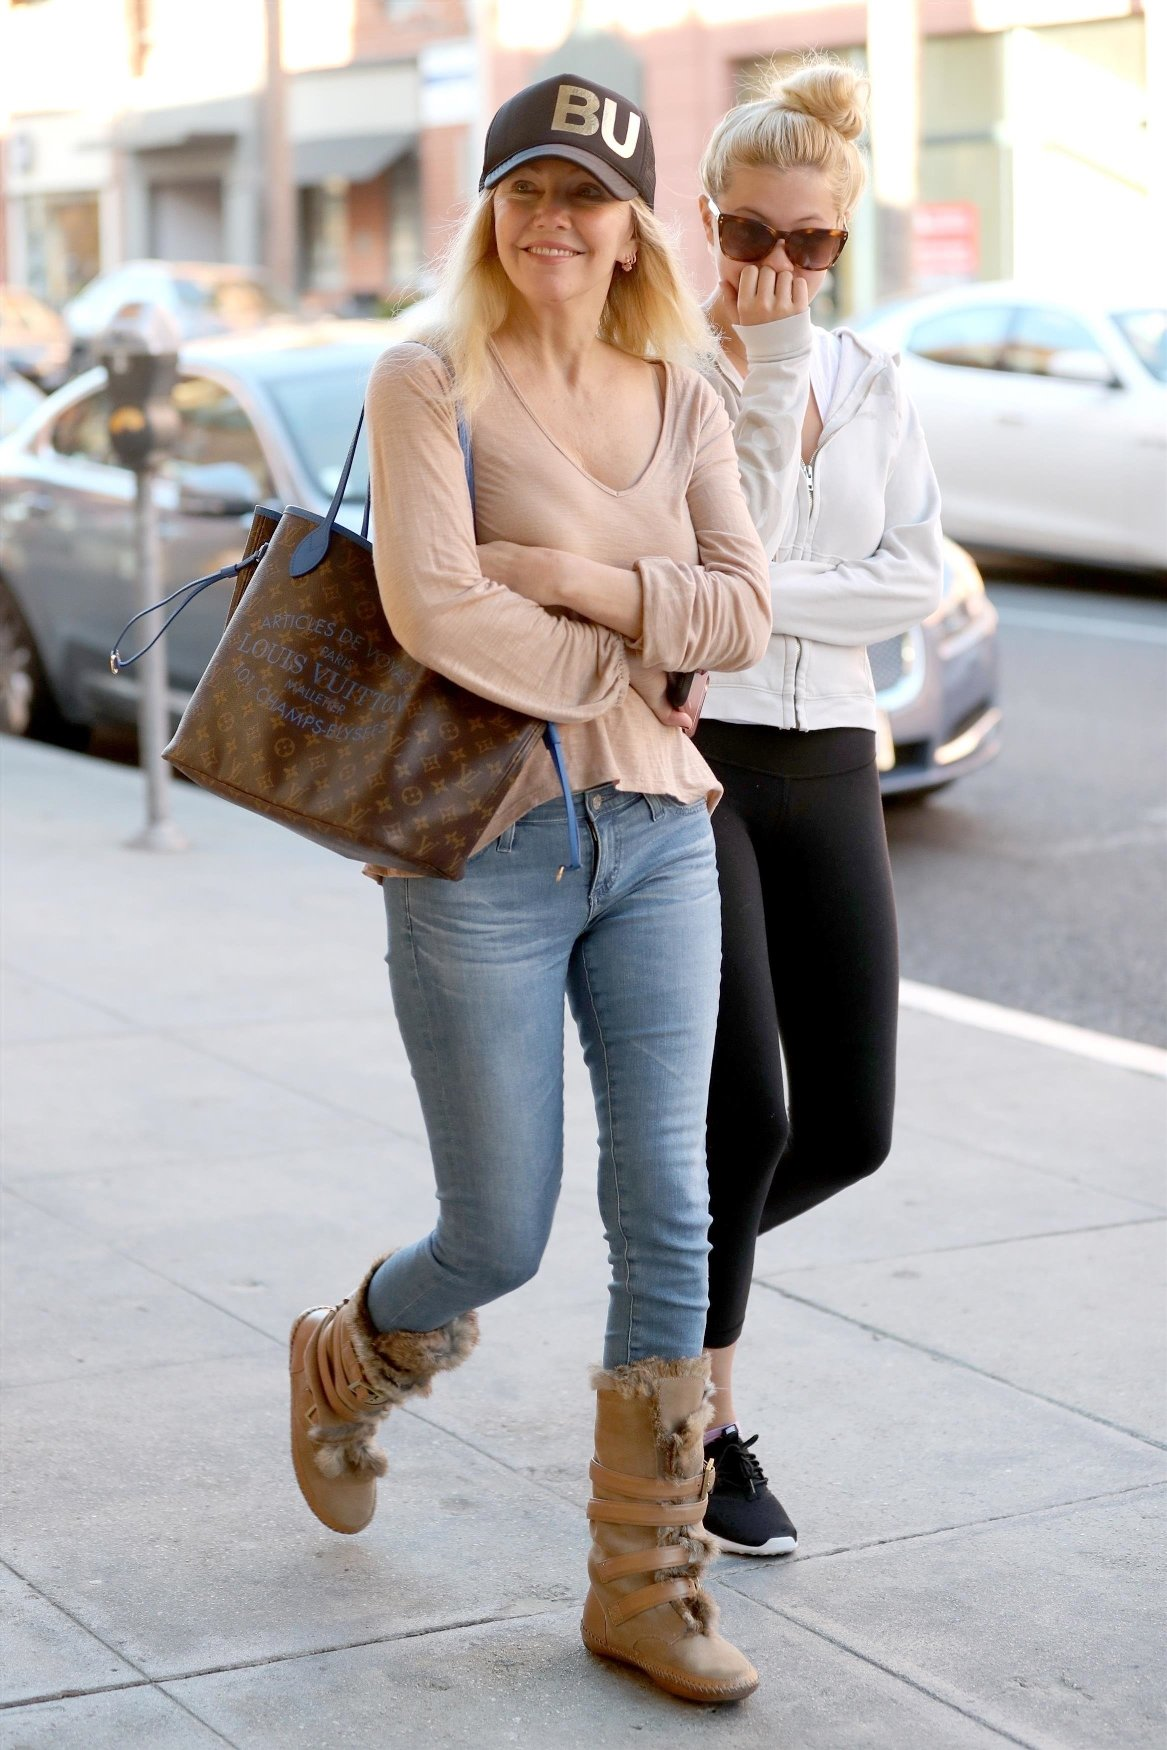 Beverly Hills, CA  - *EXCLUSIVE* Heather Locklear and her daughter Ava Sambora head off to grab some breakfast in Beverly Hills.  Pictured: Heather Locklear, Ava Sambora  BACKGRID USA 29 DECEMBER 2017, Image: 358851668, License: Rights-managed, Restrictions: , Model Release: no, Credit line: Profimedia, AKM-GSI